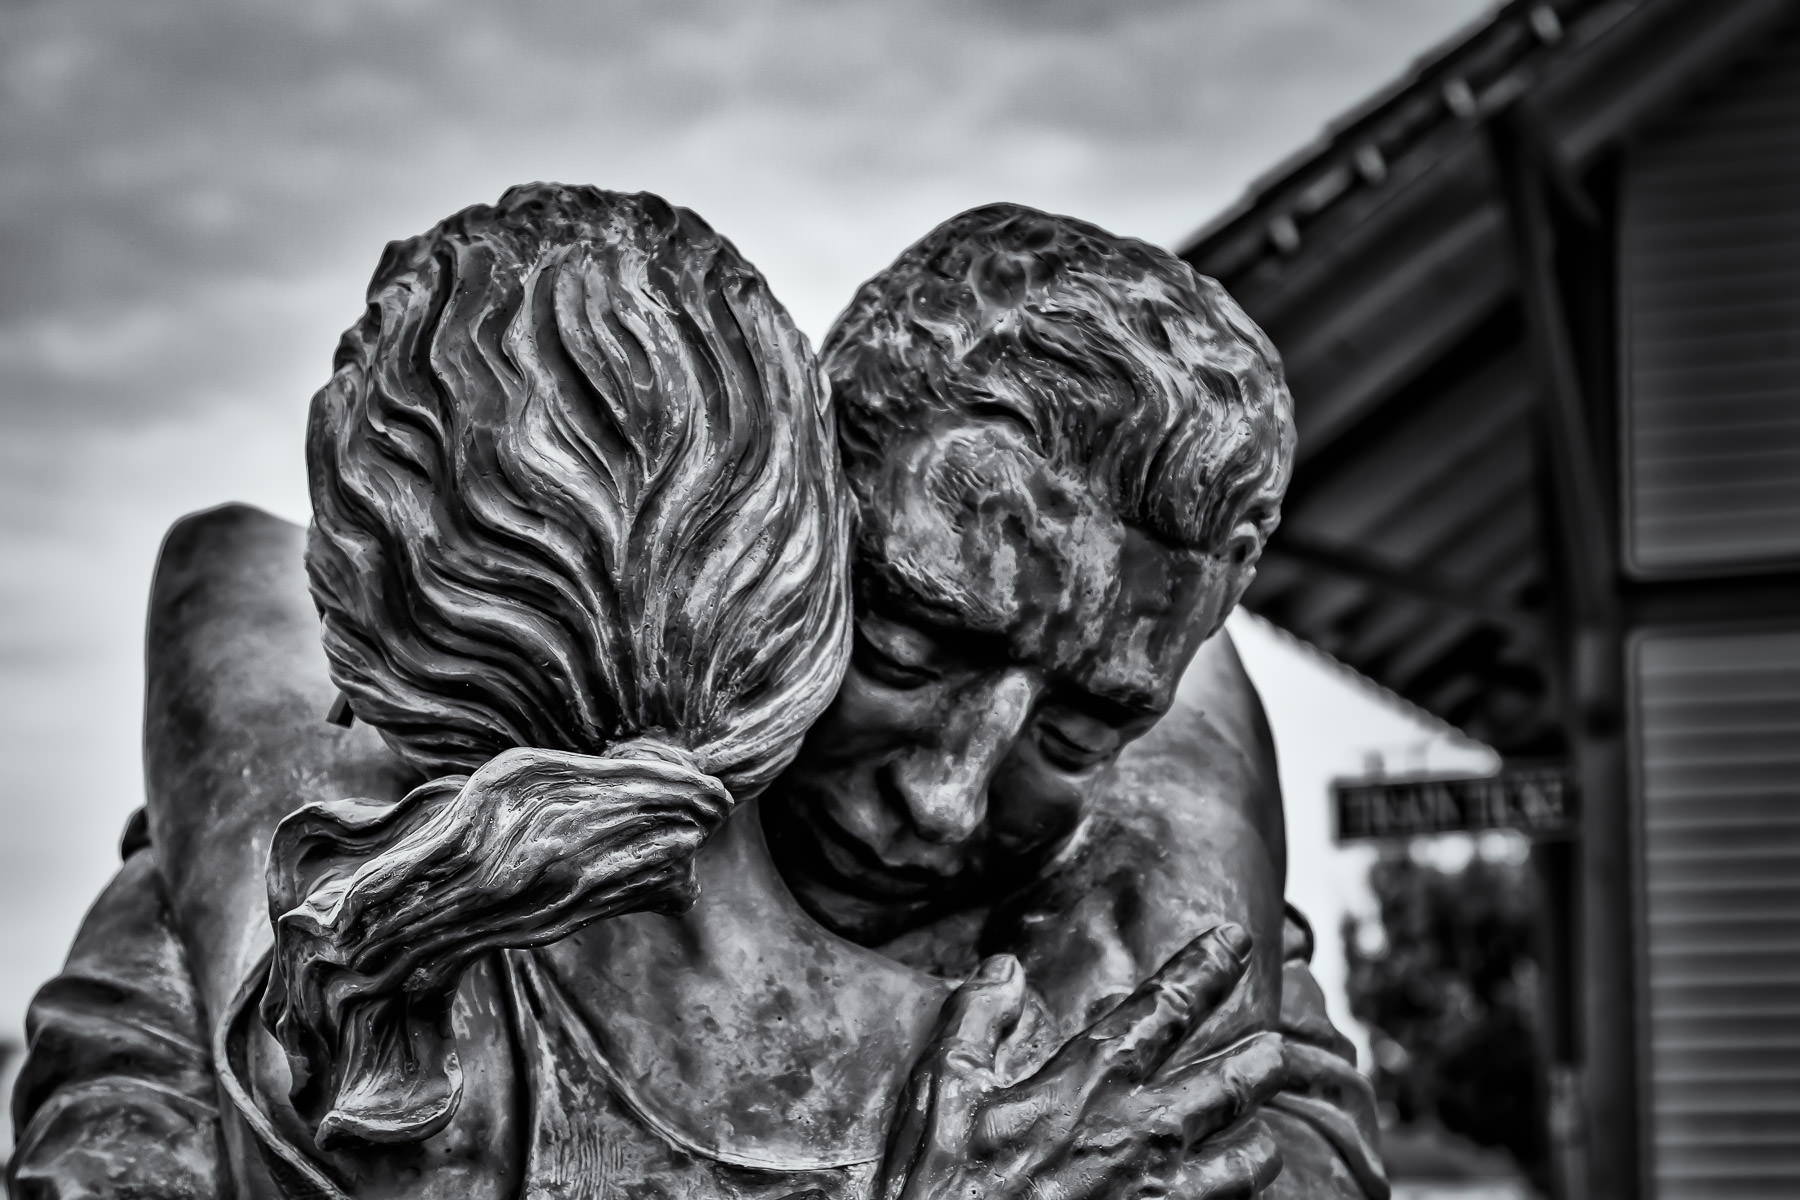 A statue of a couple embracing outside a historic train depot in Grapevine, Texas.